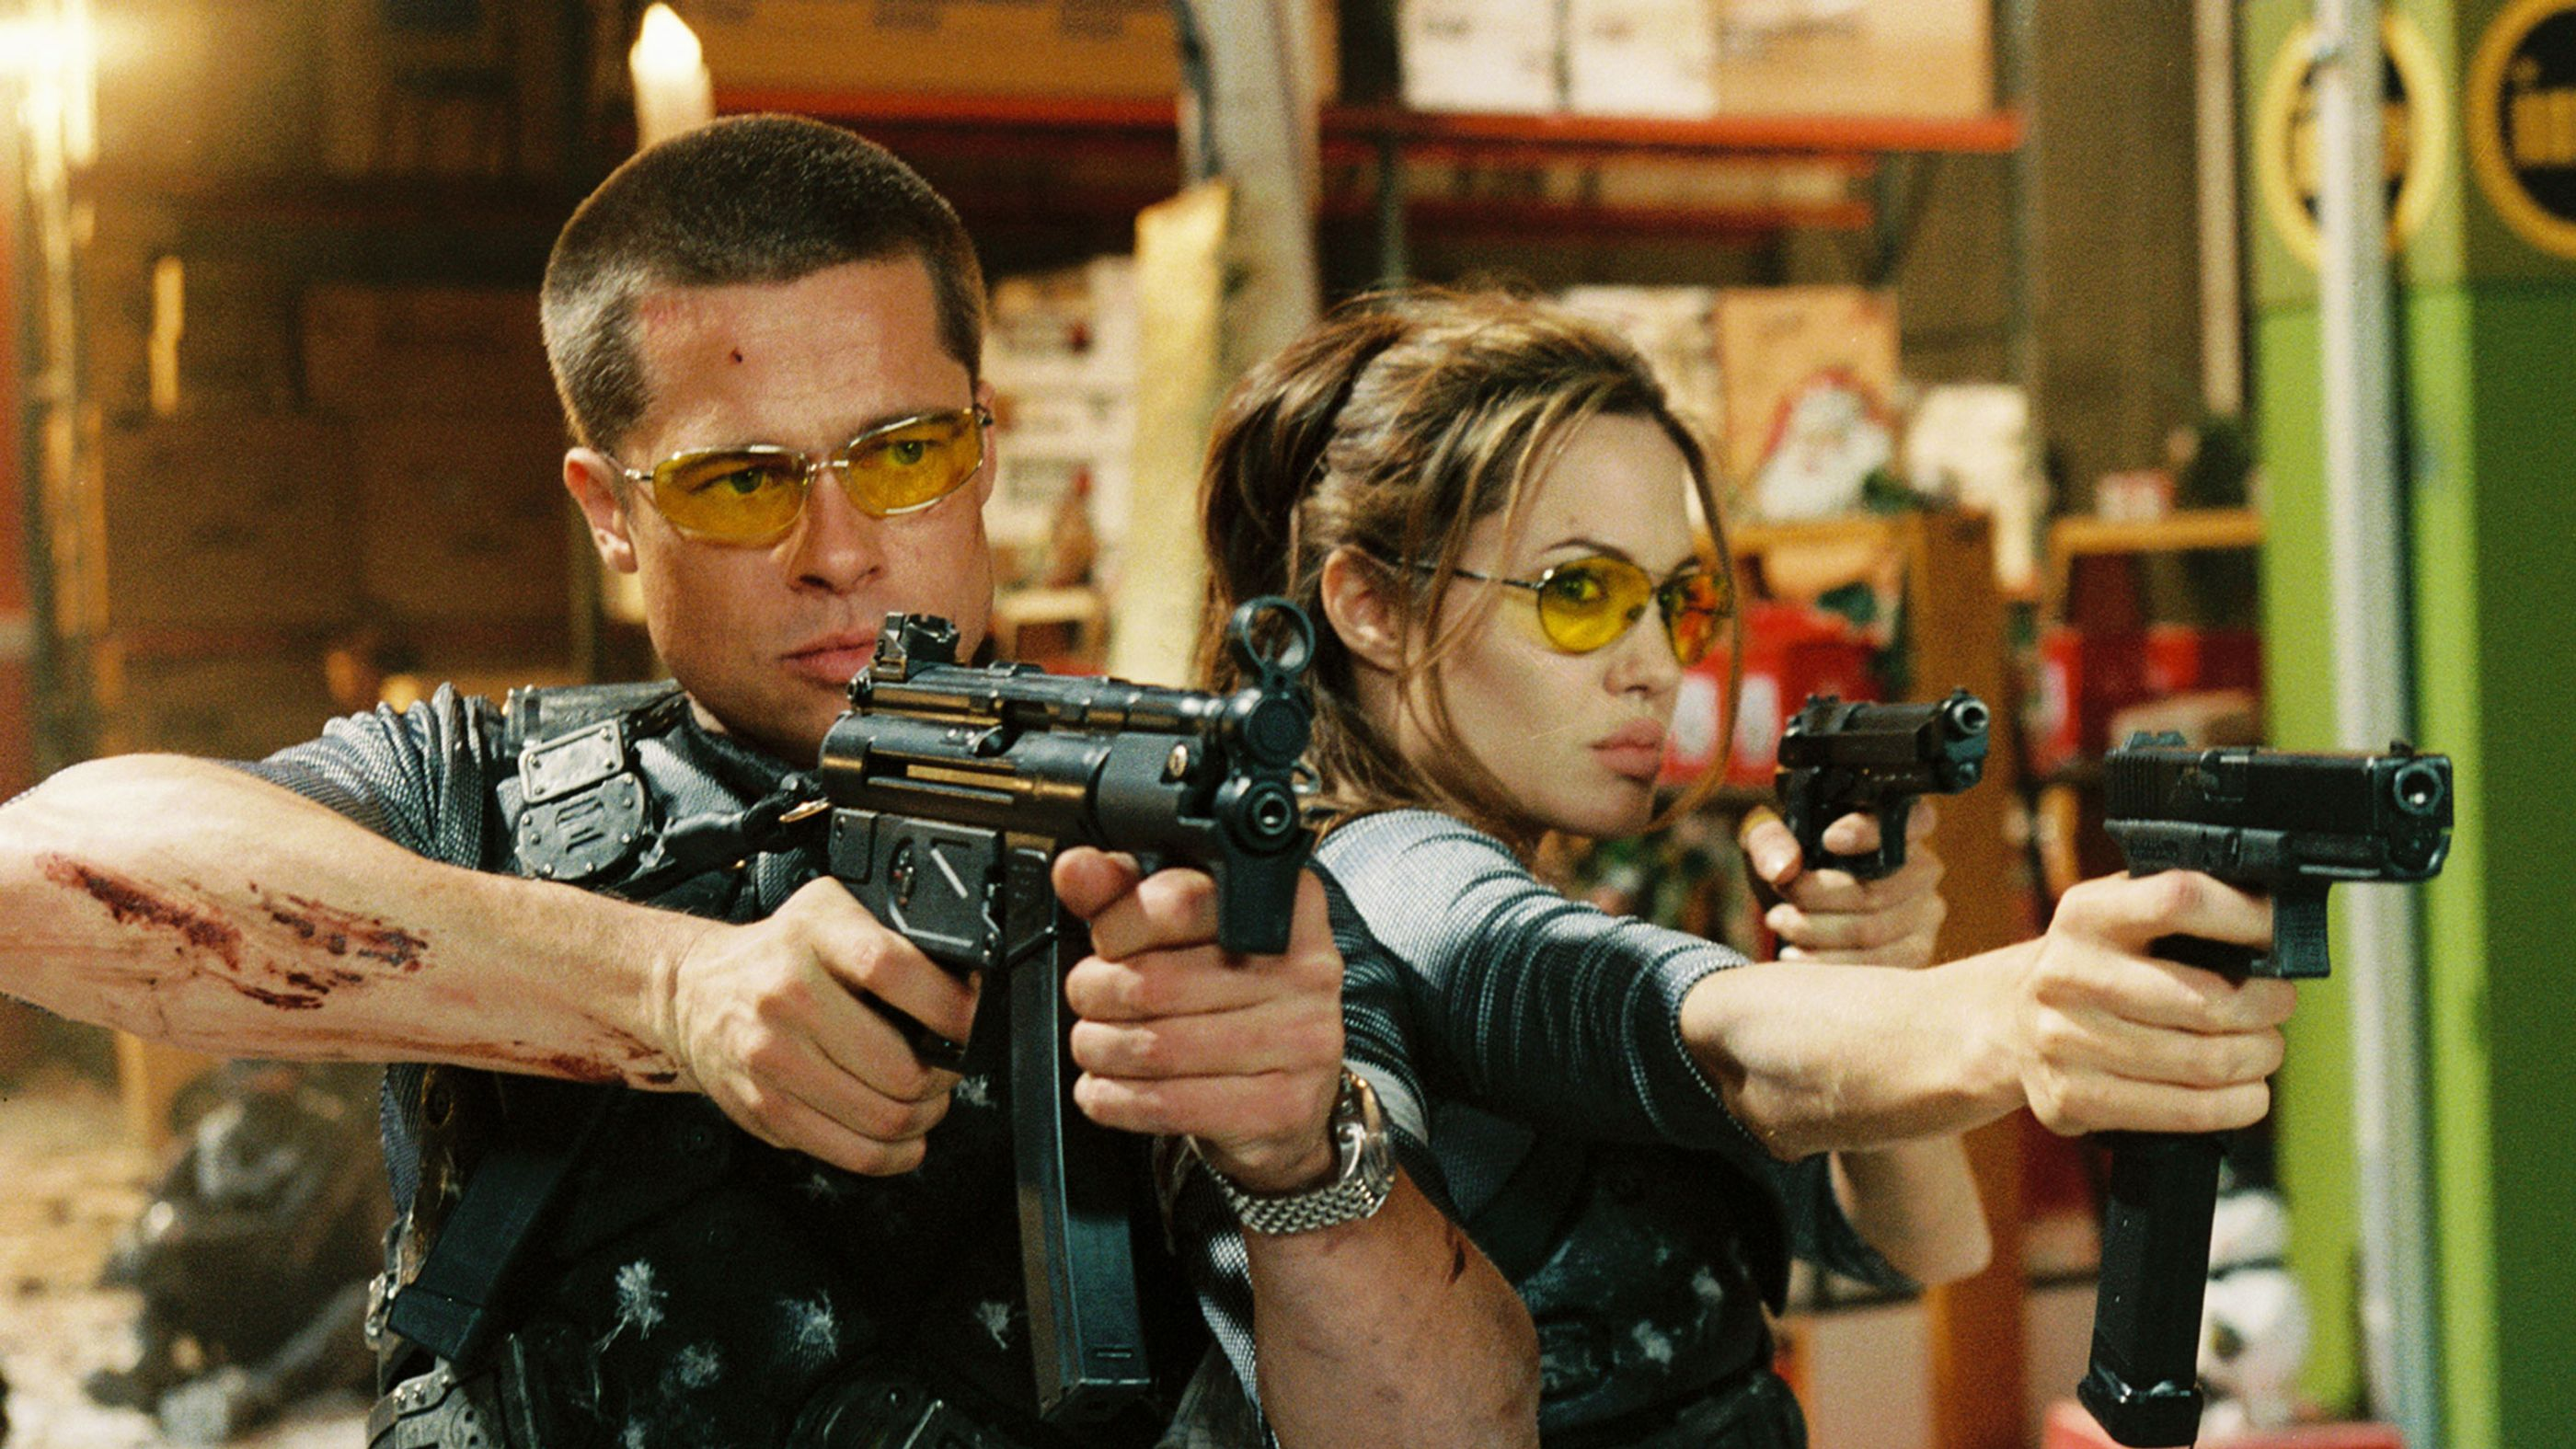 mr and mrs smith full movie free download in hindi